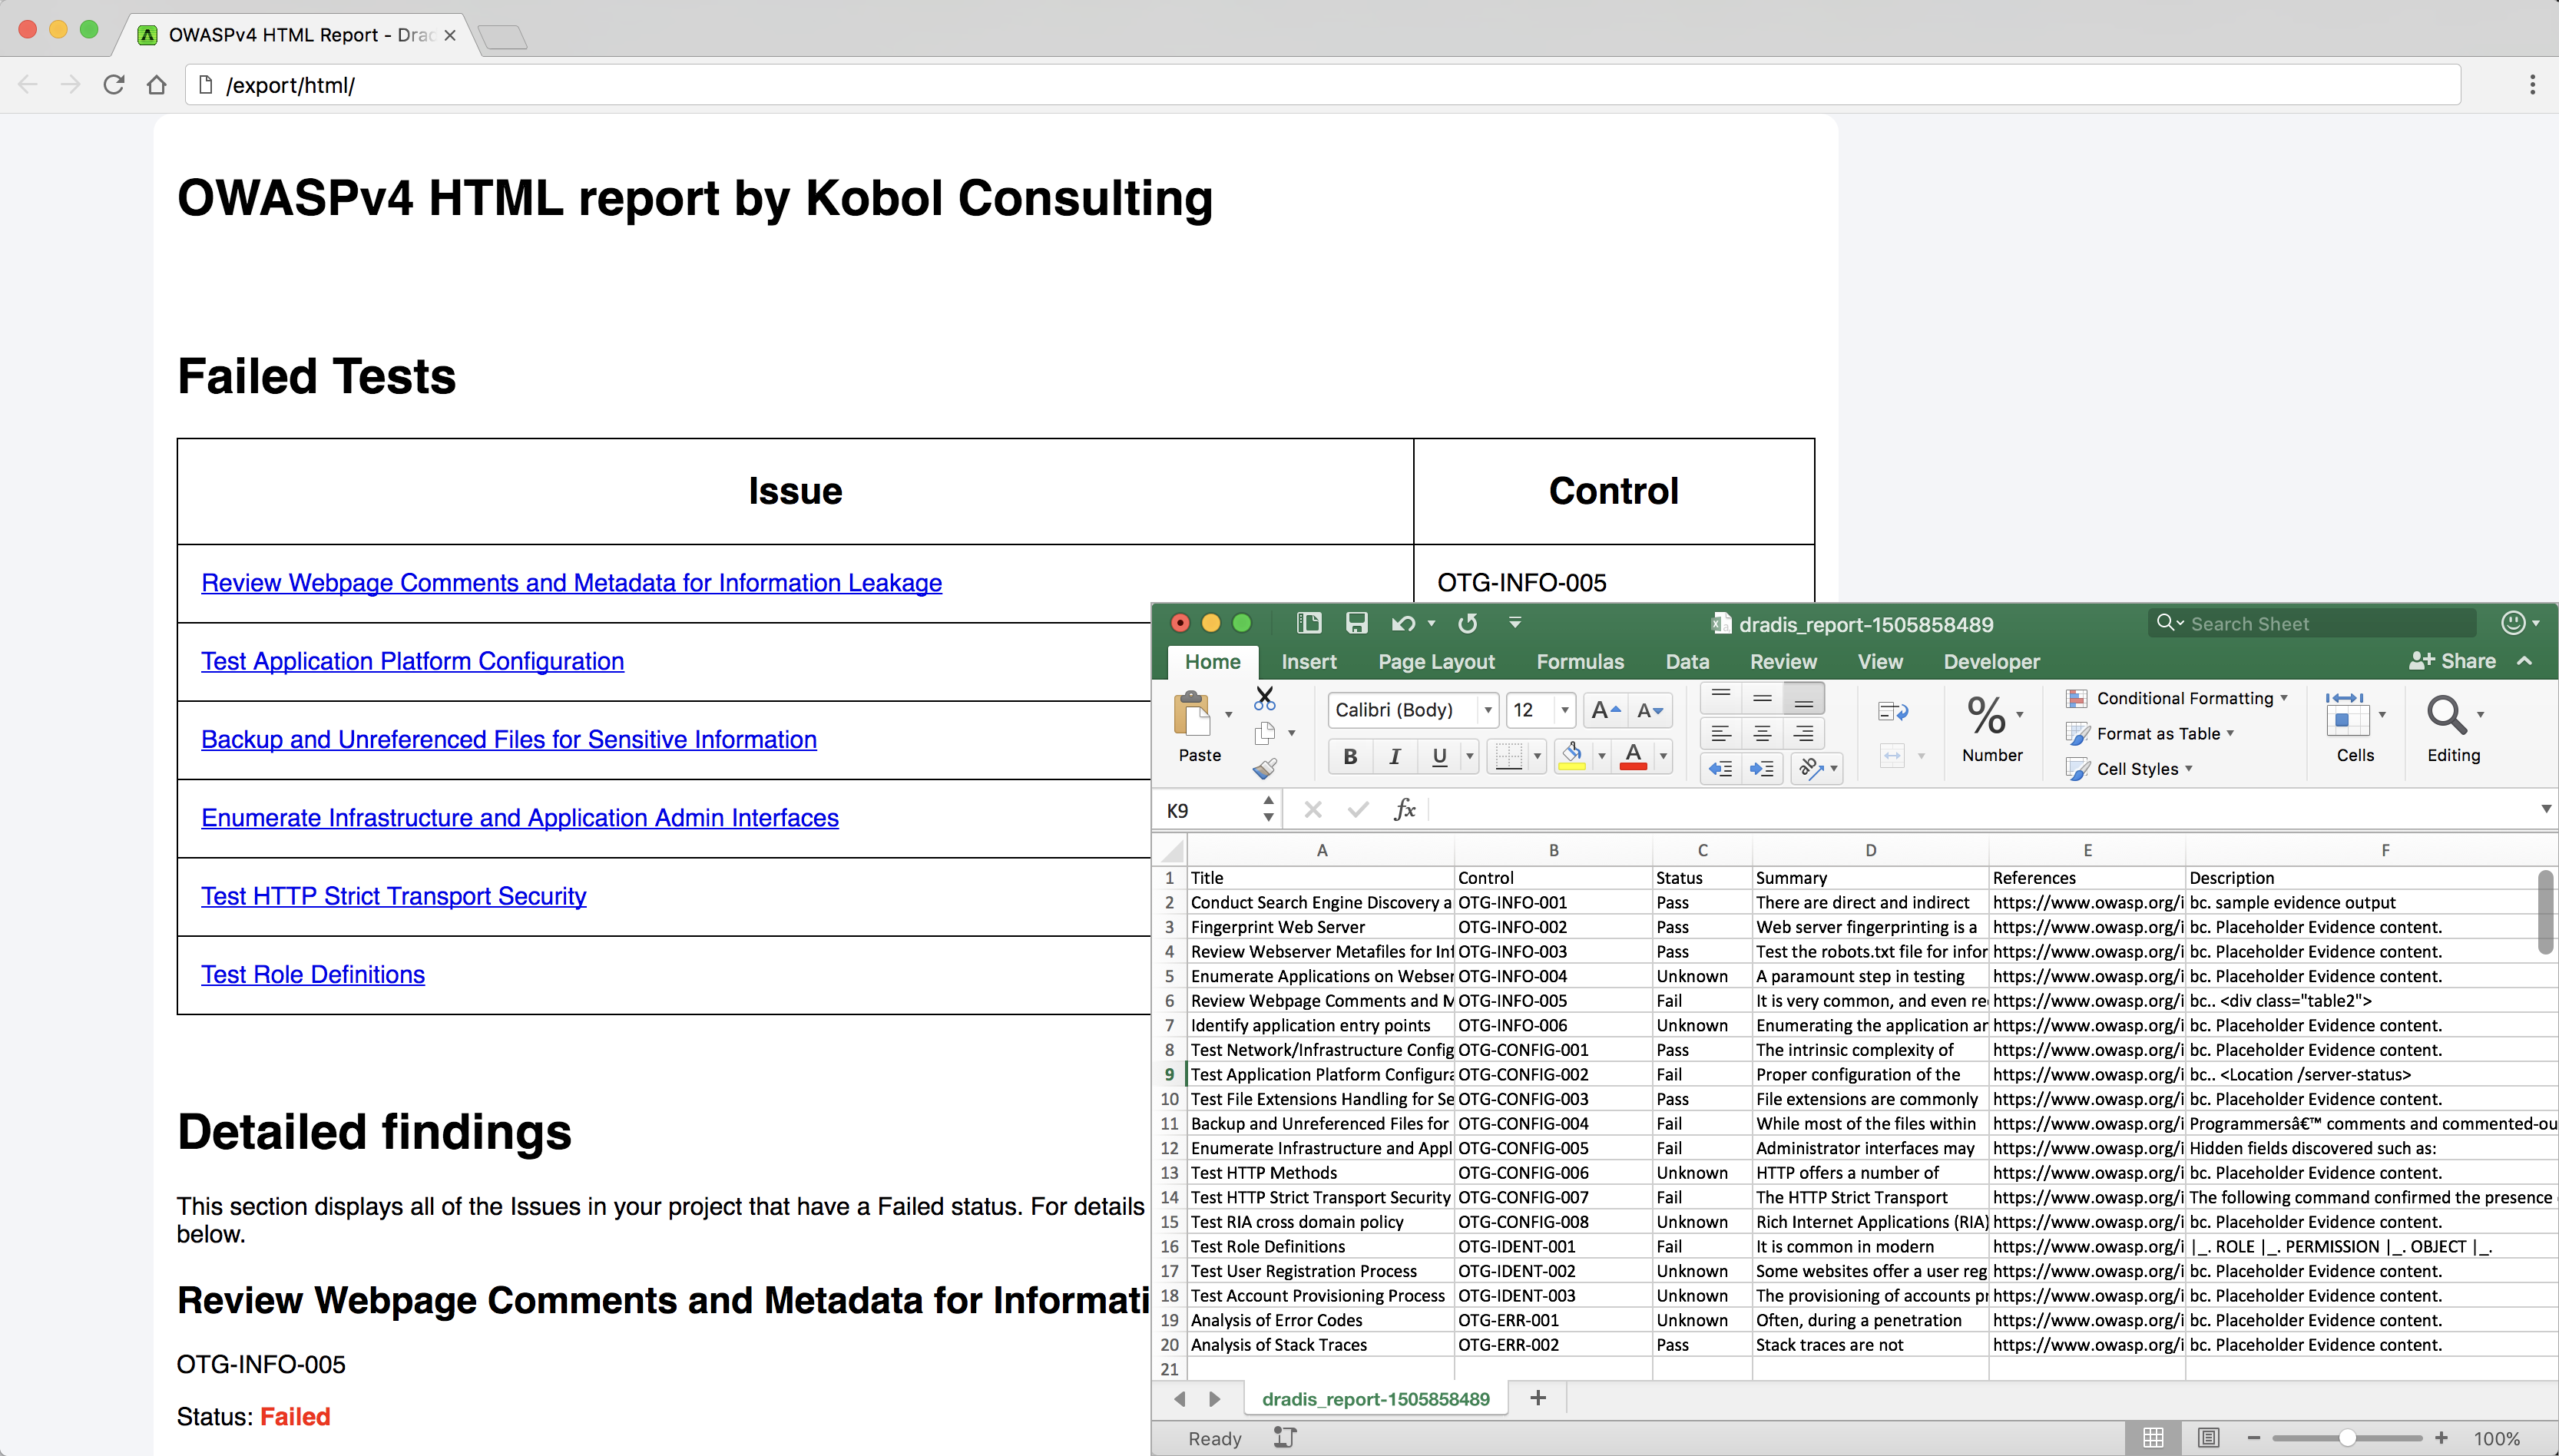 Screenshot showing generated reports in Word and Excel